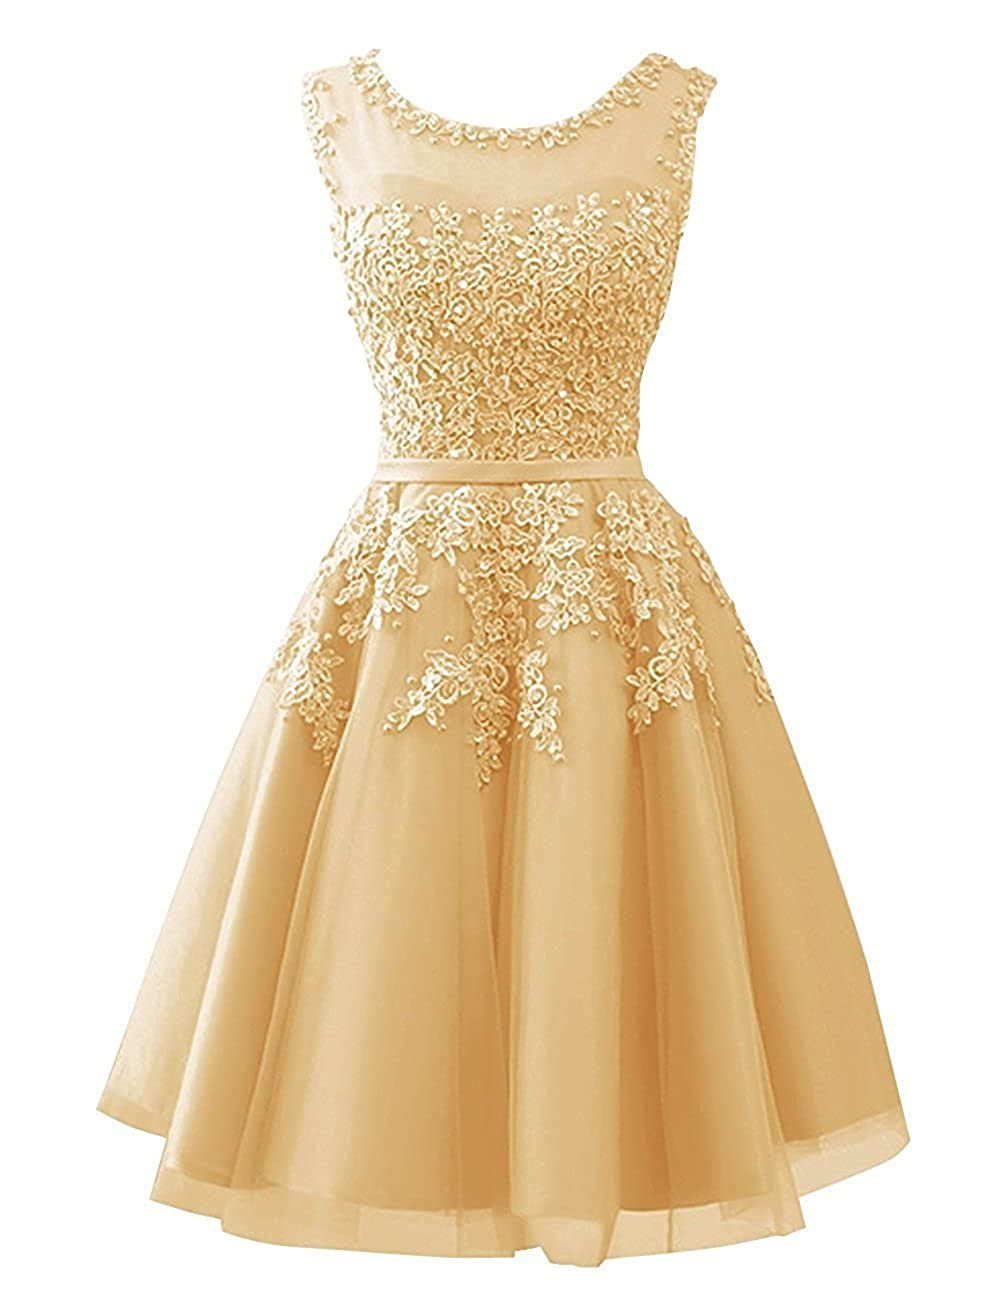 gold Cdress Tulle Short Junior Homecoming Dresses Prom Evening Dress Party Formal Gowns Lace Appliques